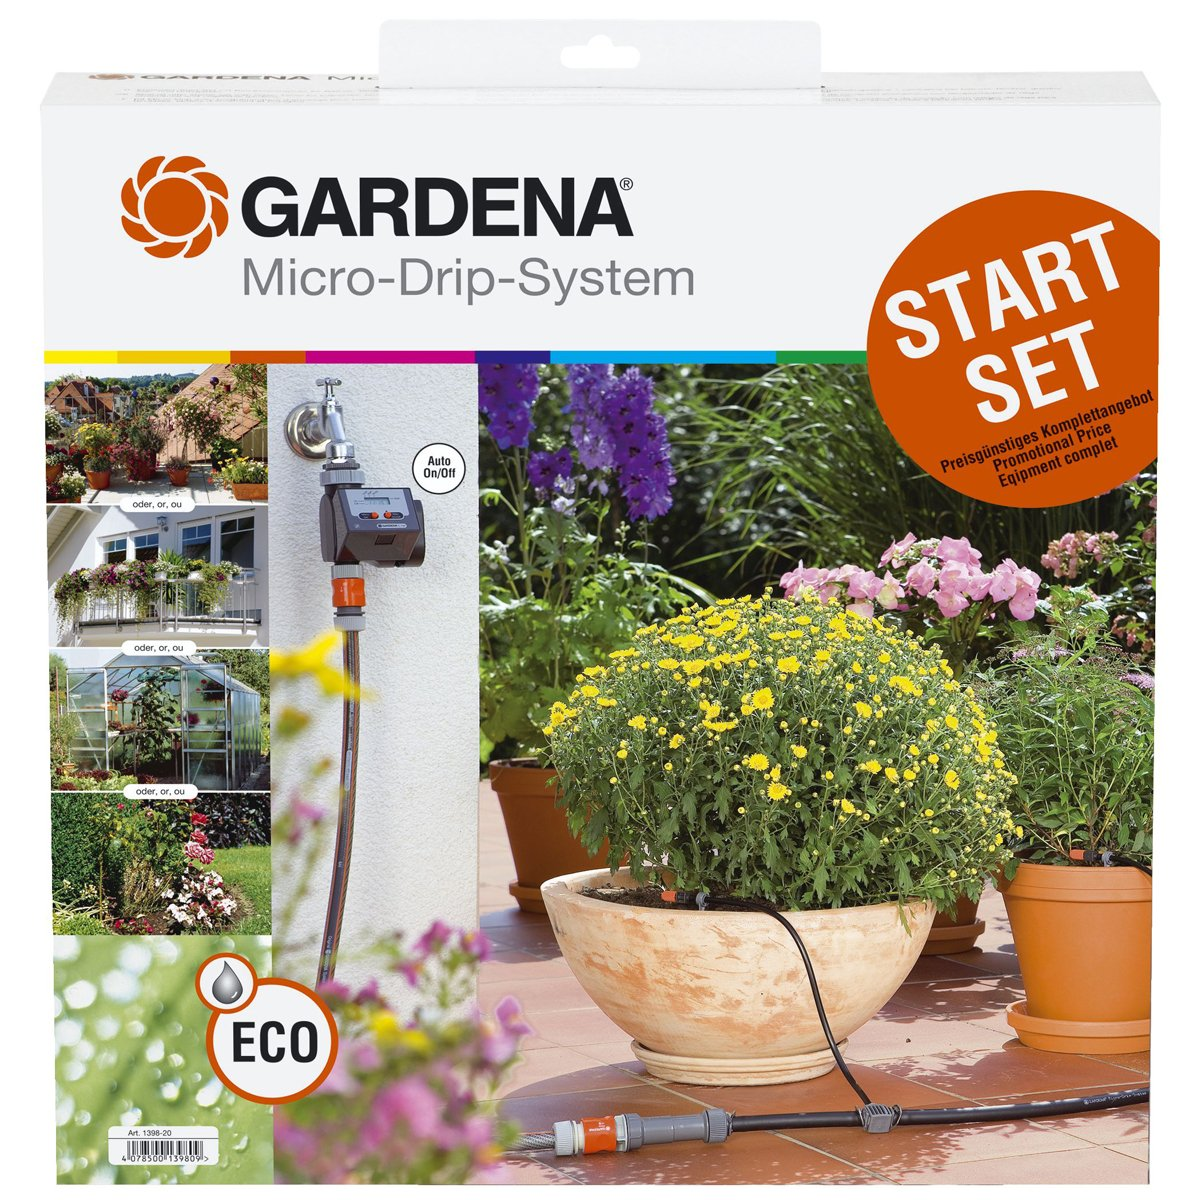 Gardena 1398 Micro-Drip Watering Starter Kit With Timer by Gardena